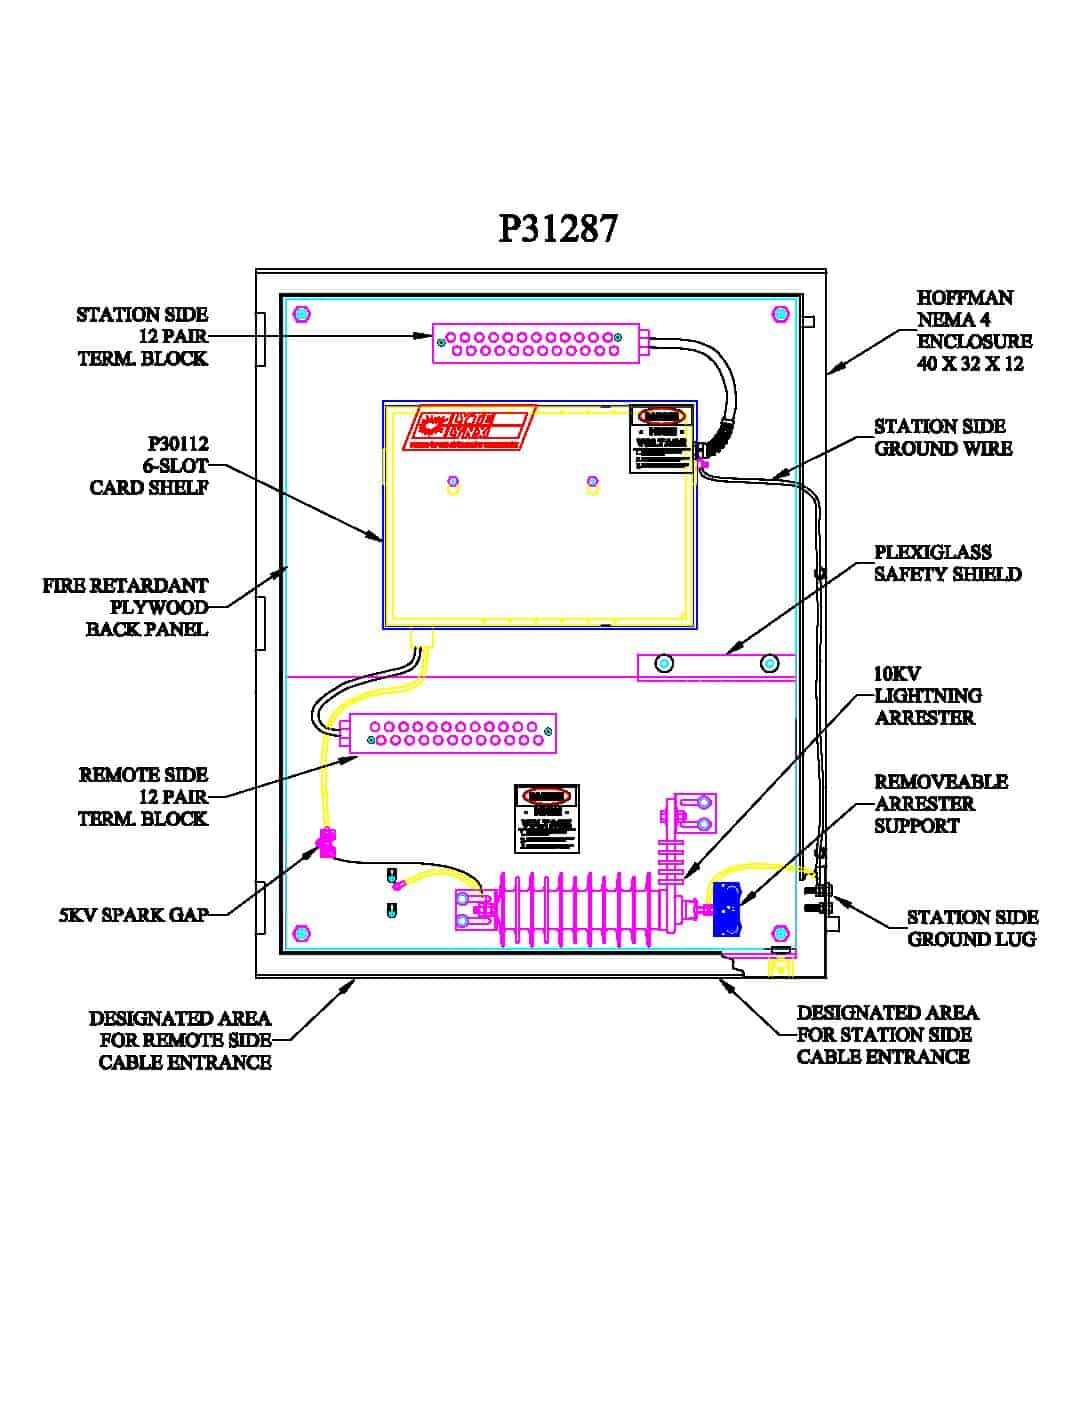 P31287 Turnkey Protection Packages – 6 slot PDF thumbnail